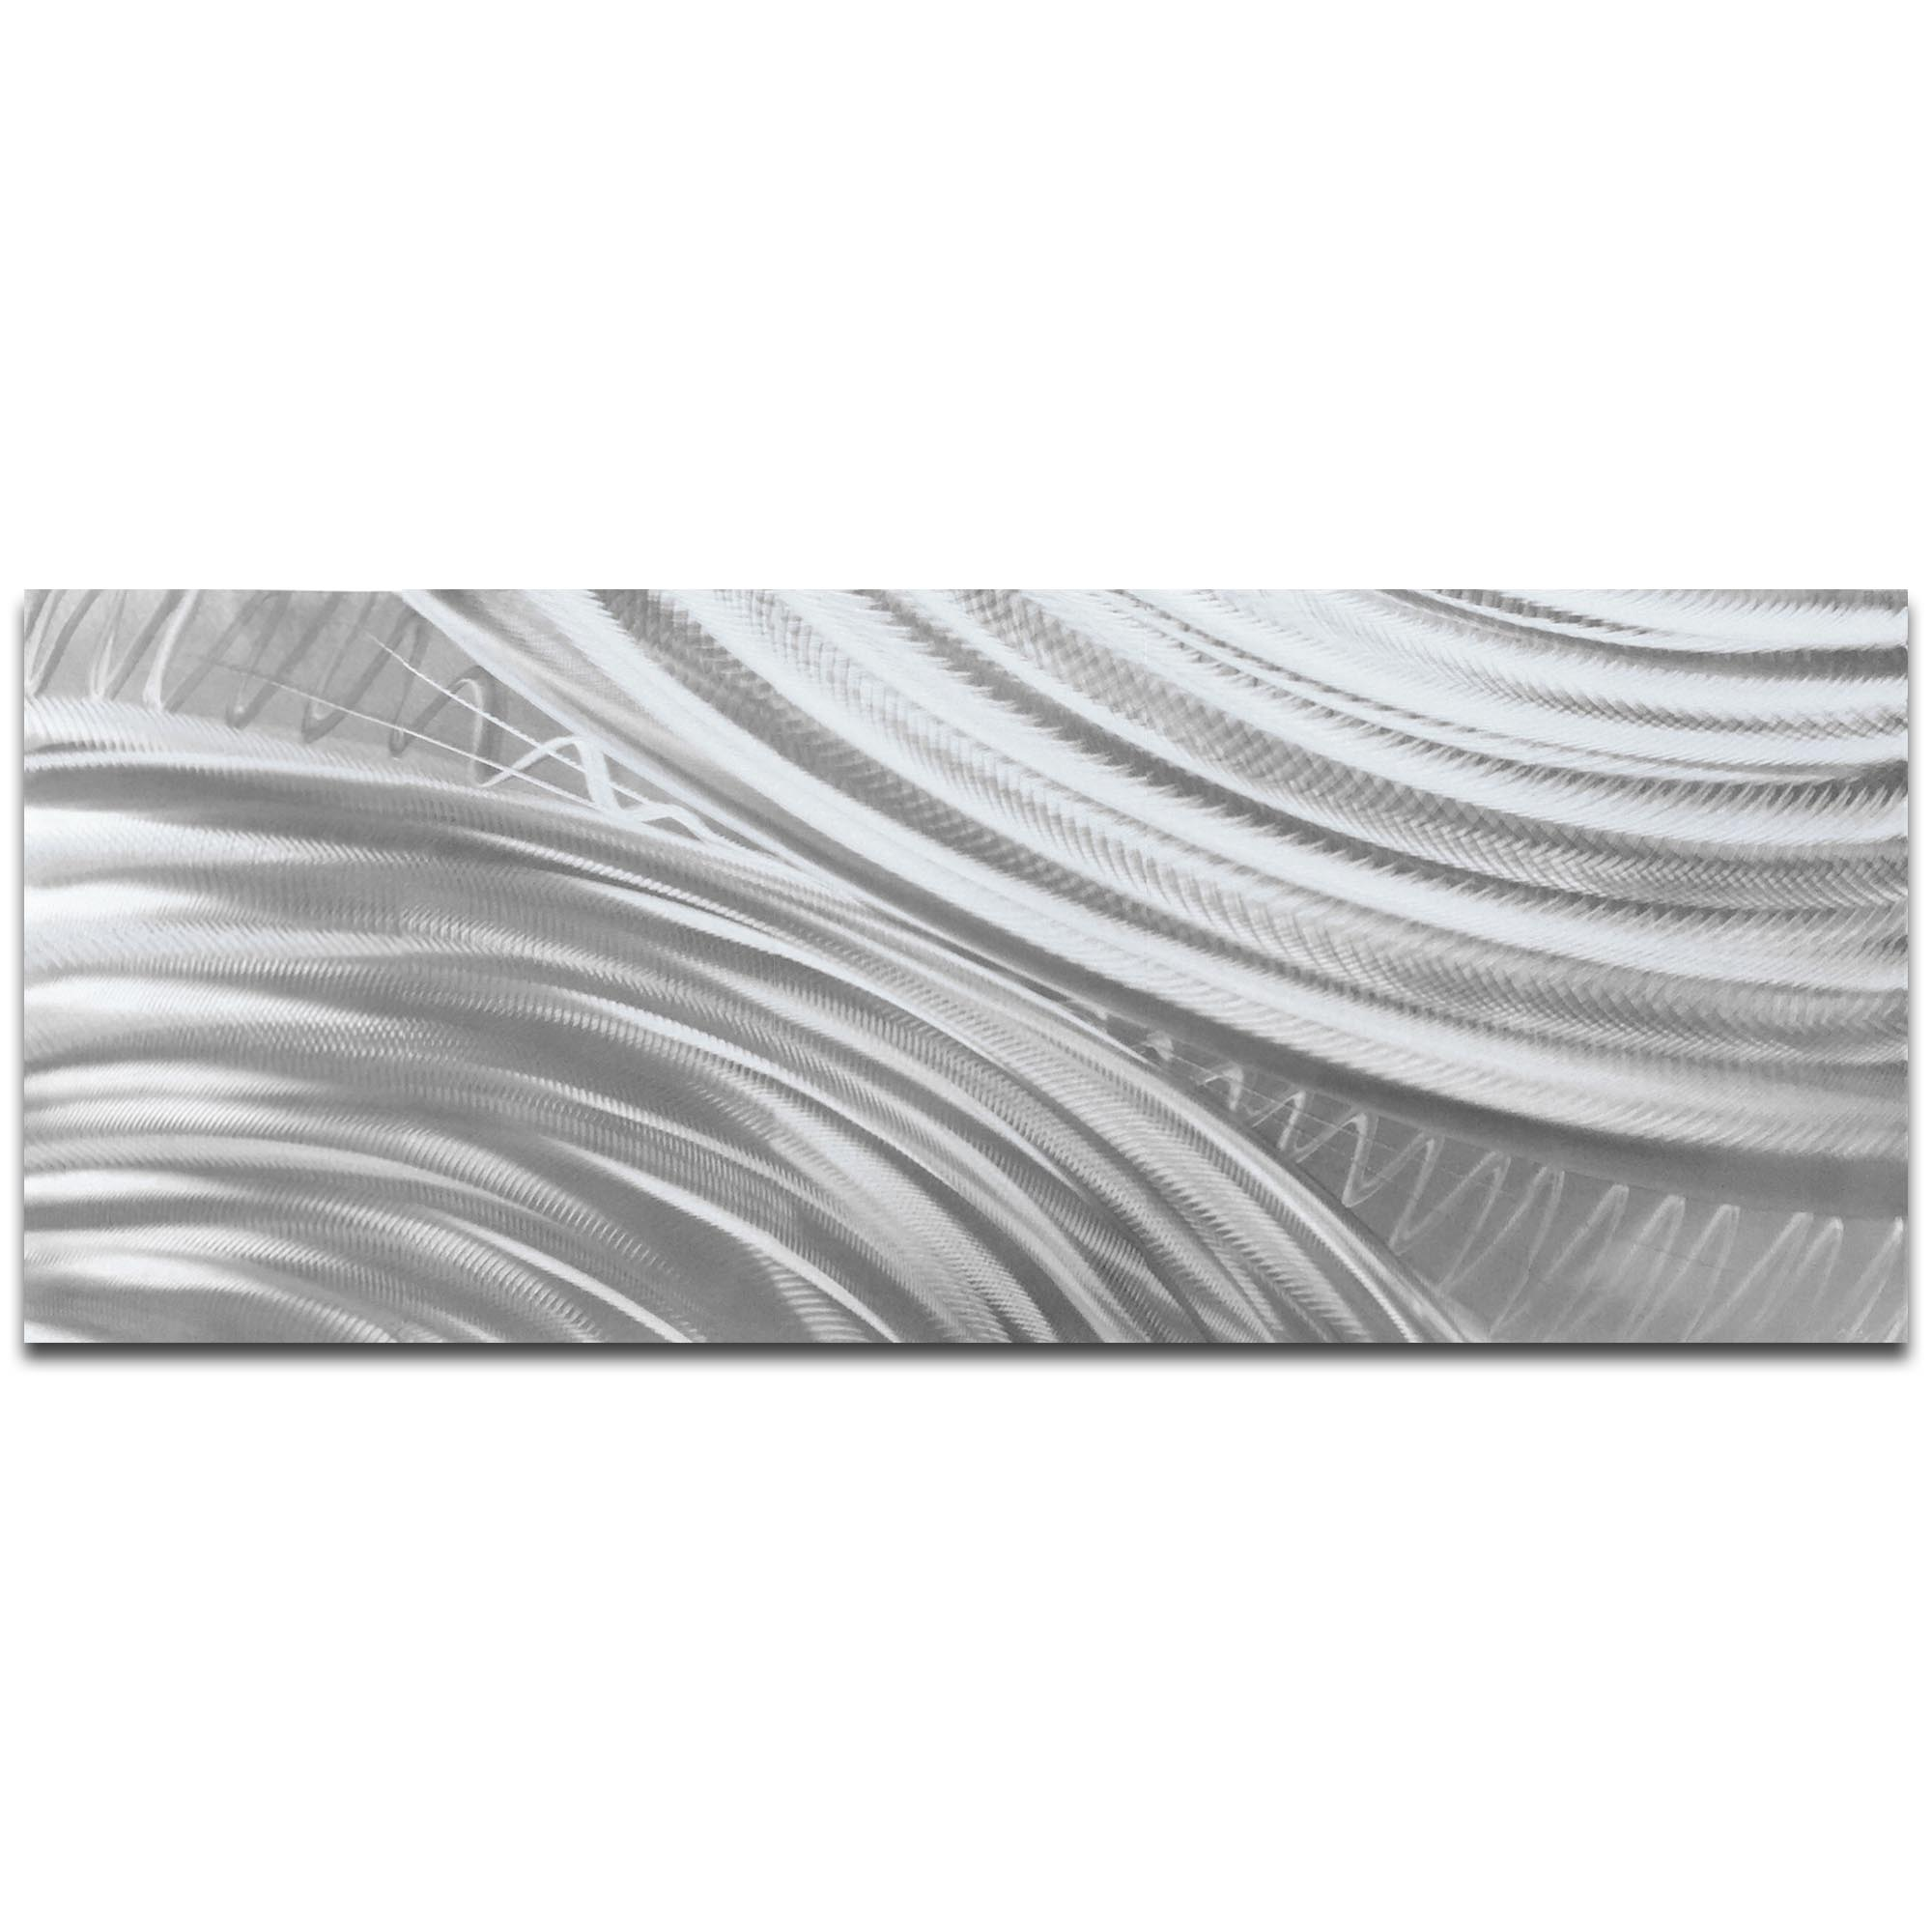 Helena Martin 'Moment of Impact Silver' 60in x 24in Original Abstract Art on Ground Metal